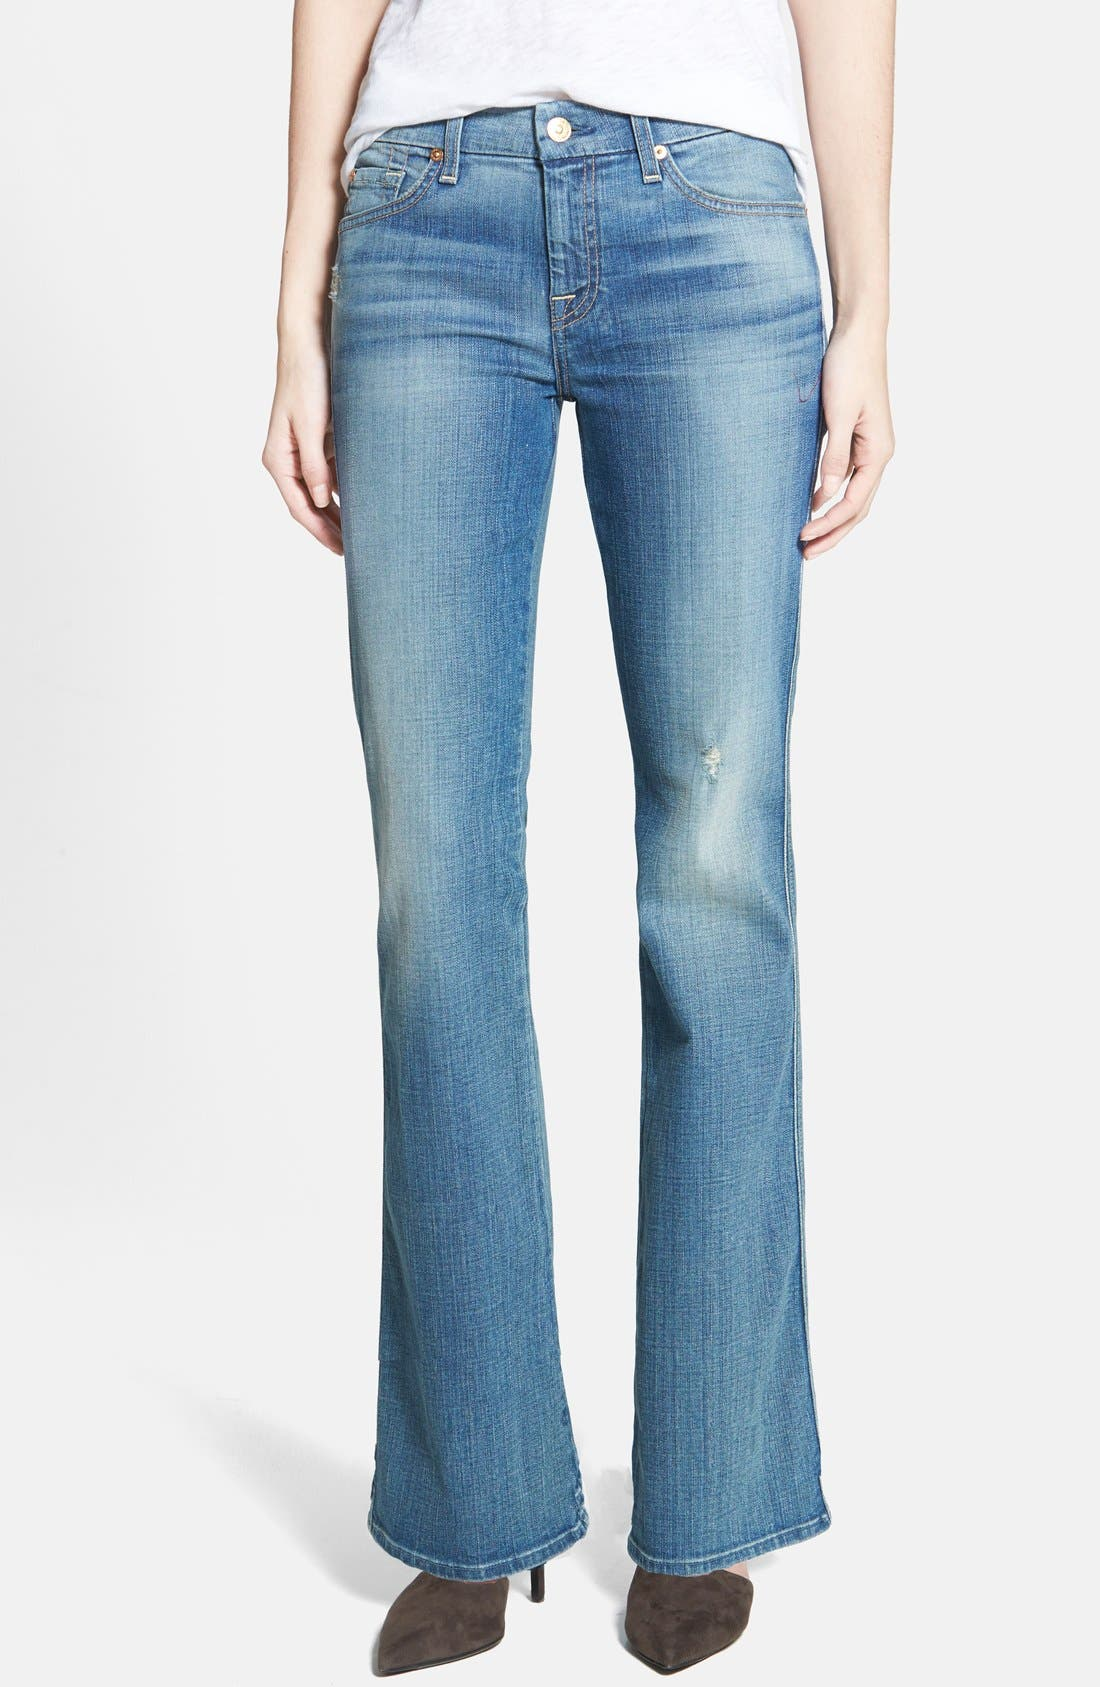 Main Image - 7 For All Mankind® 'A Pocket' Bootcut Jeans (Dusty Vintage Blue)